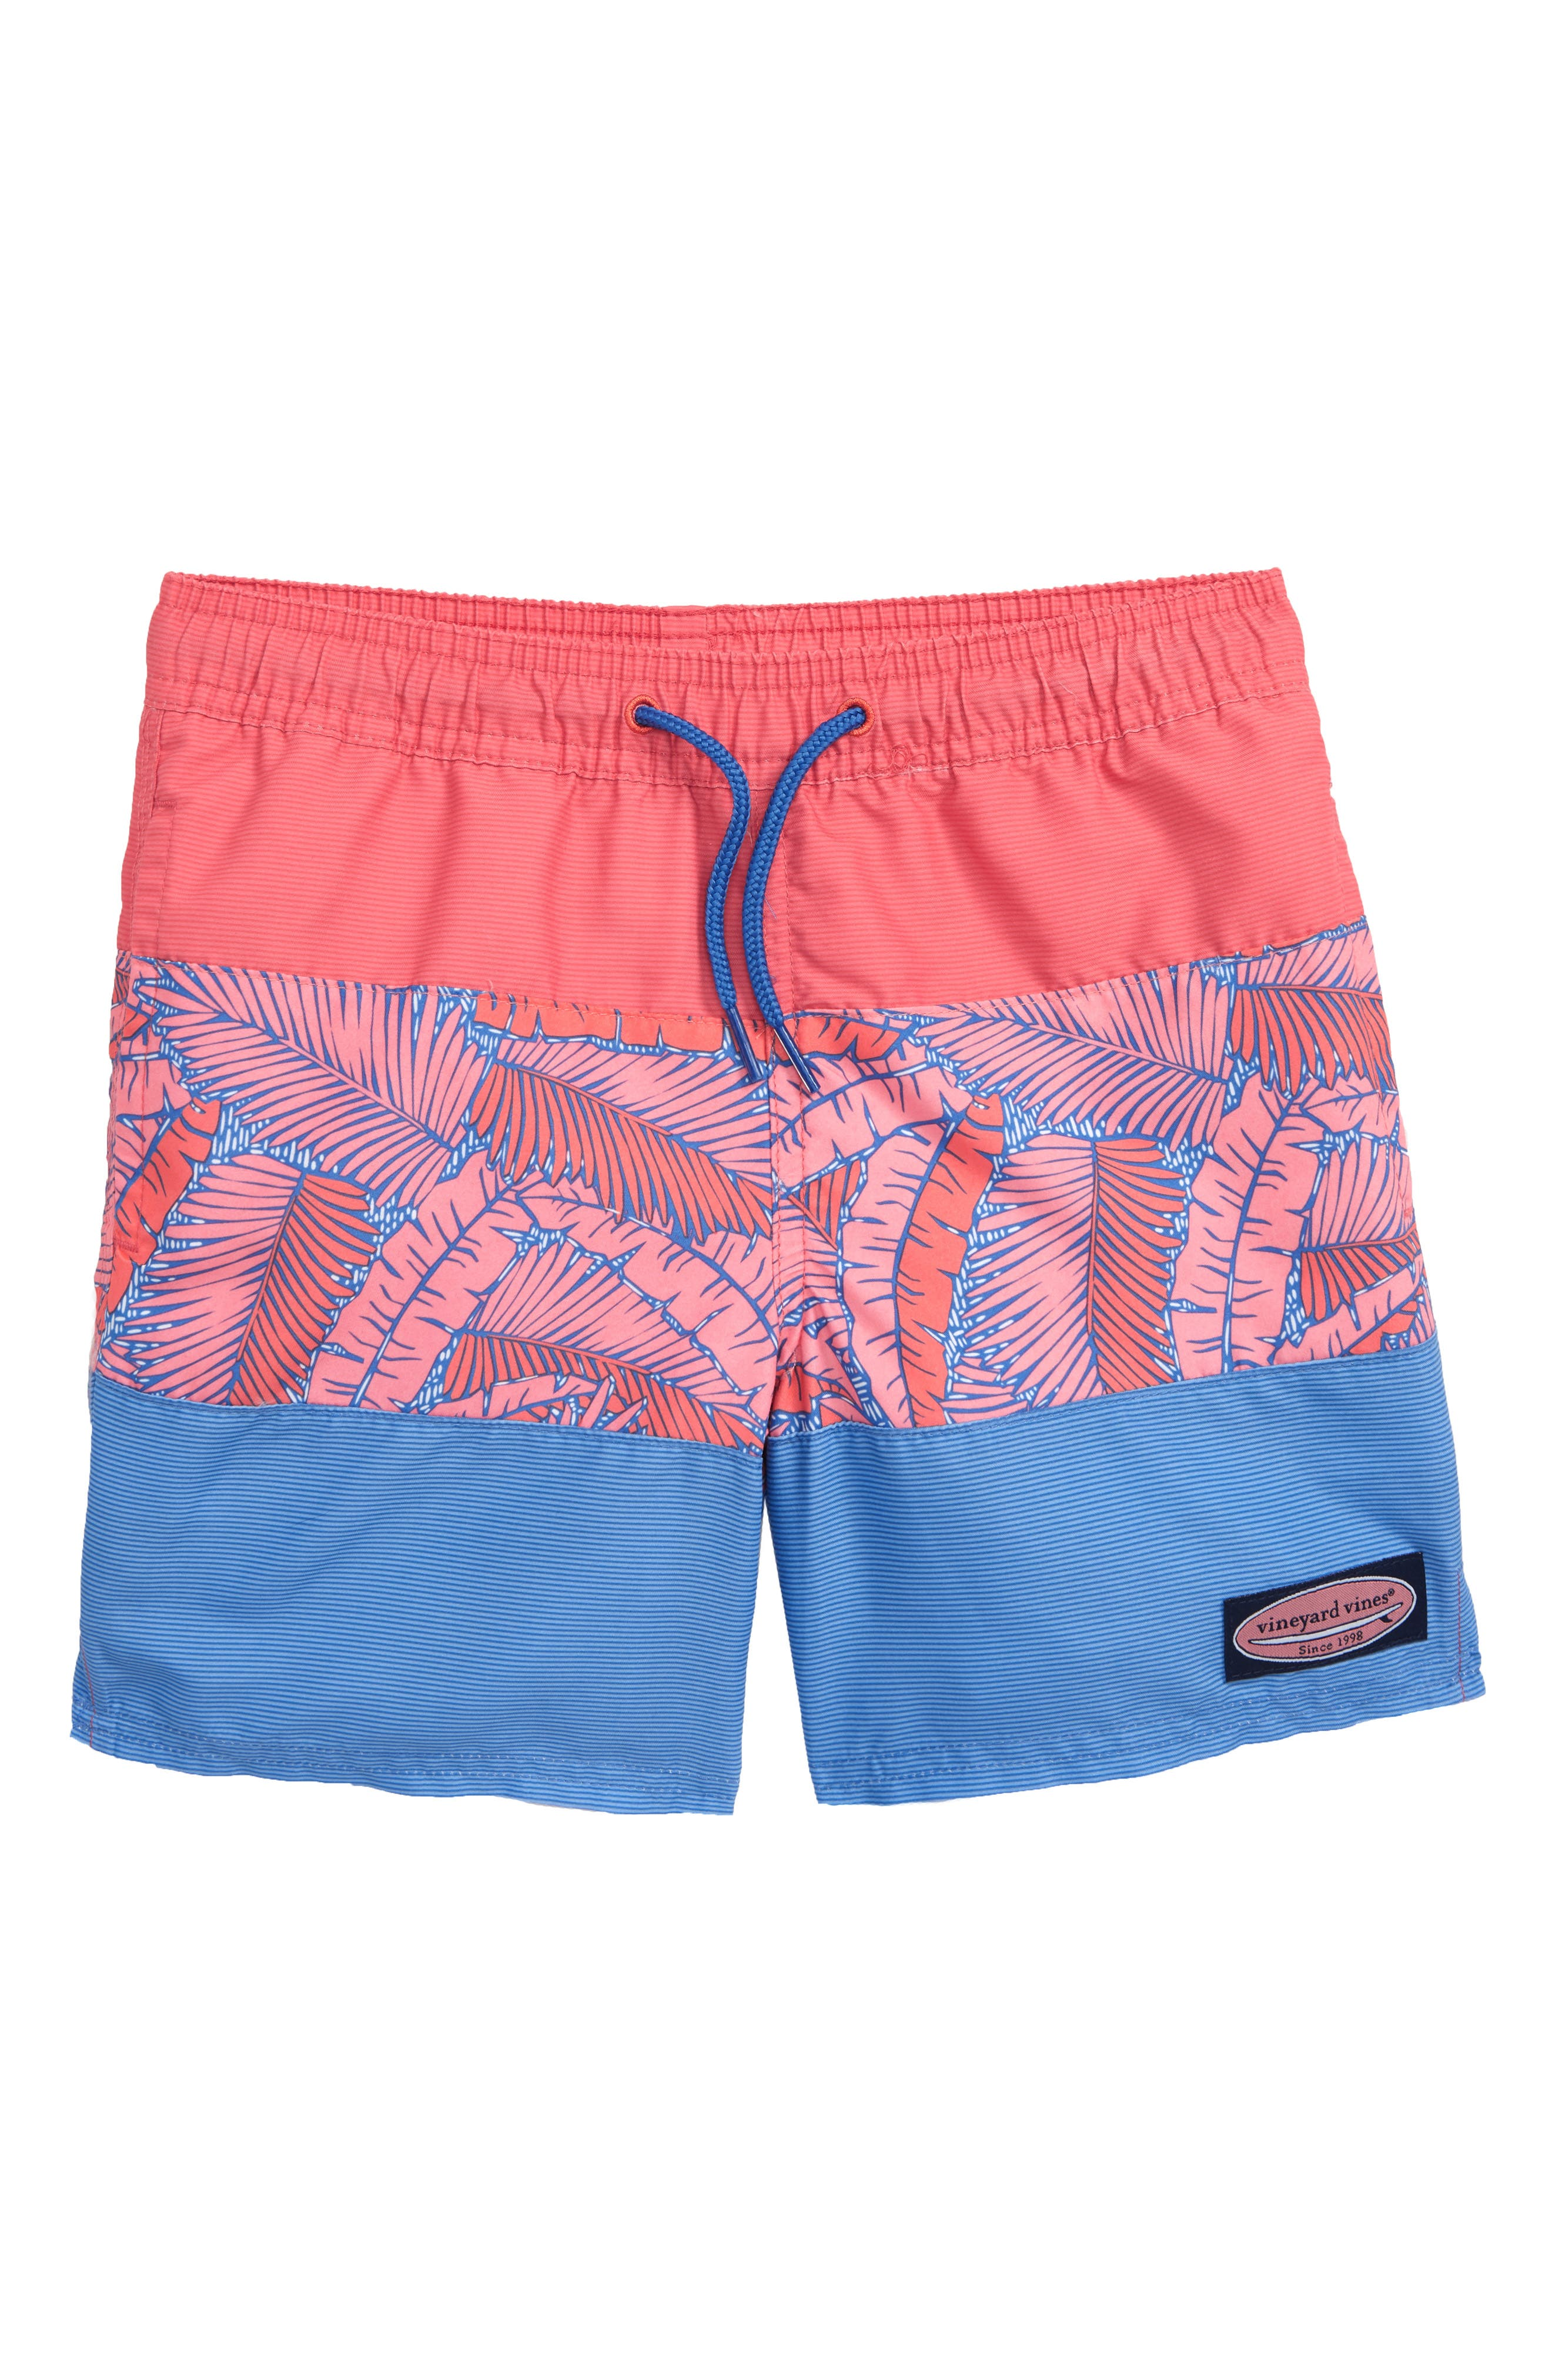 VINEYARD VINES Island Palm Pieced Chappy Swim Trunks, Main, color, WASHED NEON PINK